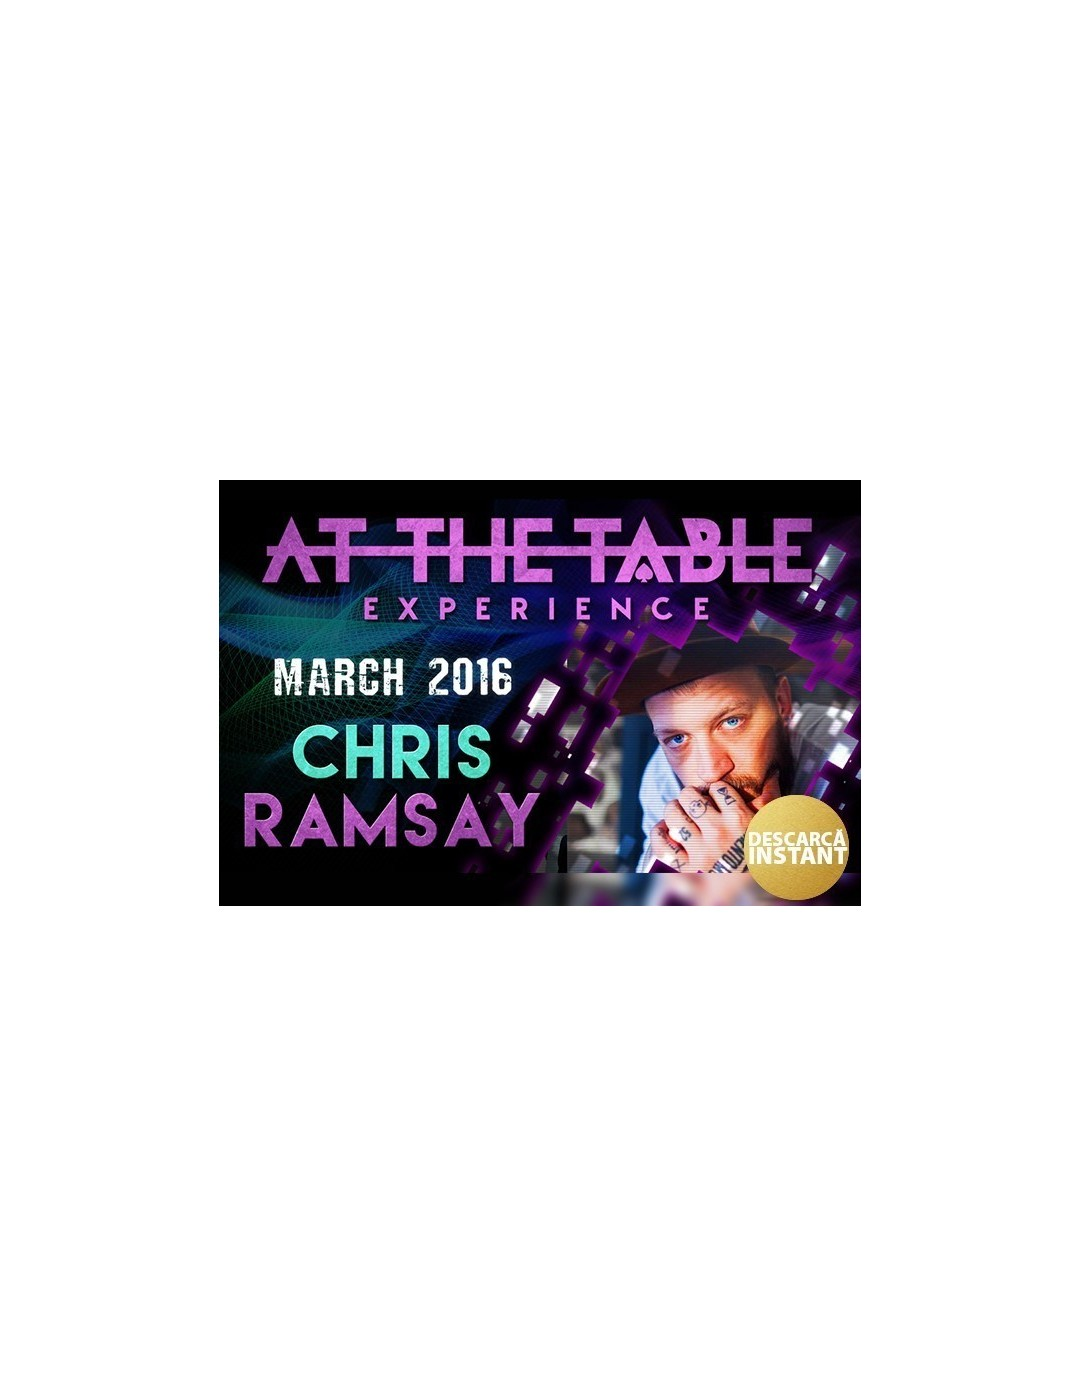 At the Table Live Lecture Chris Ramsay March 2nd 2016 - At the table lecture